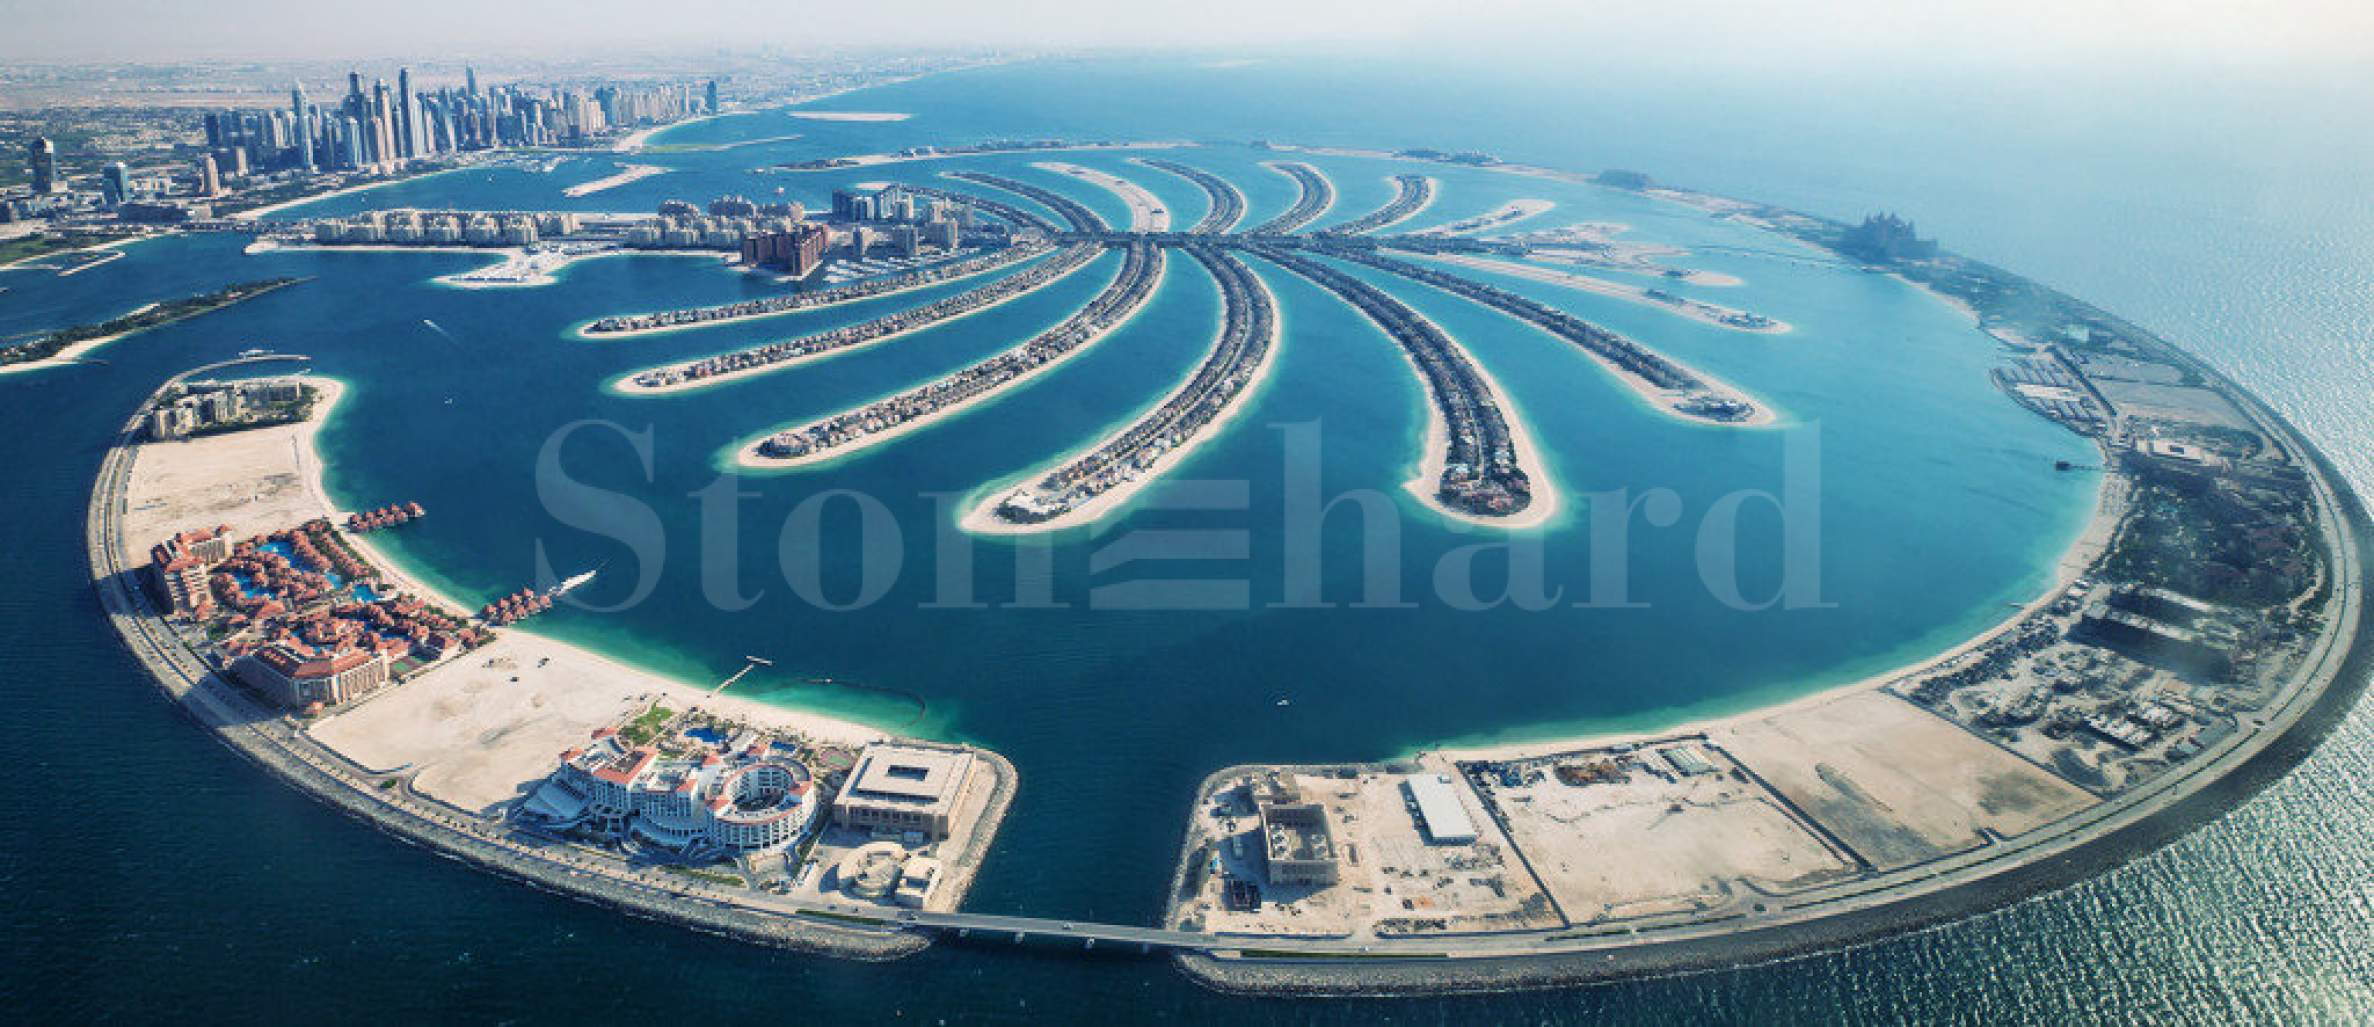 Luxury serviced residences on the Palm Jumeirah2 - Stonehard